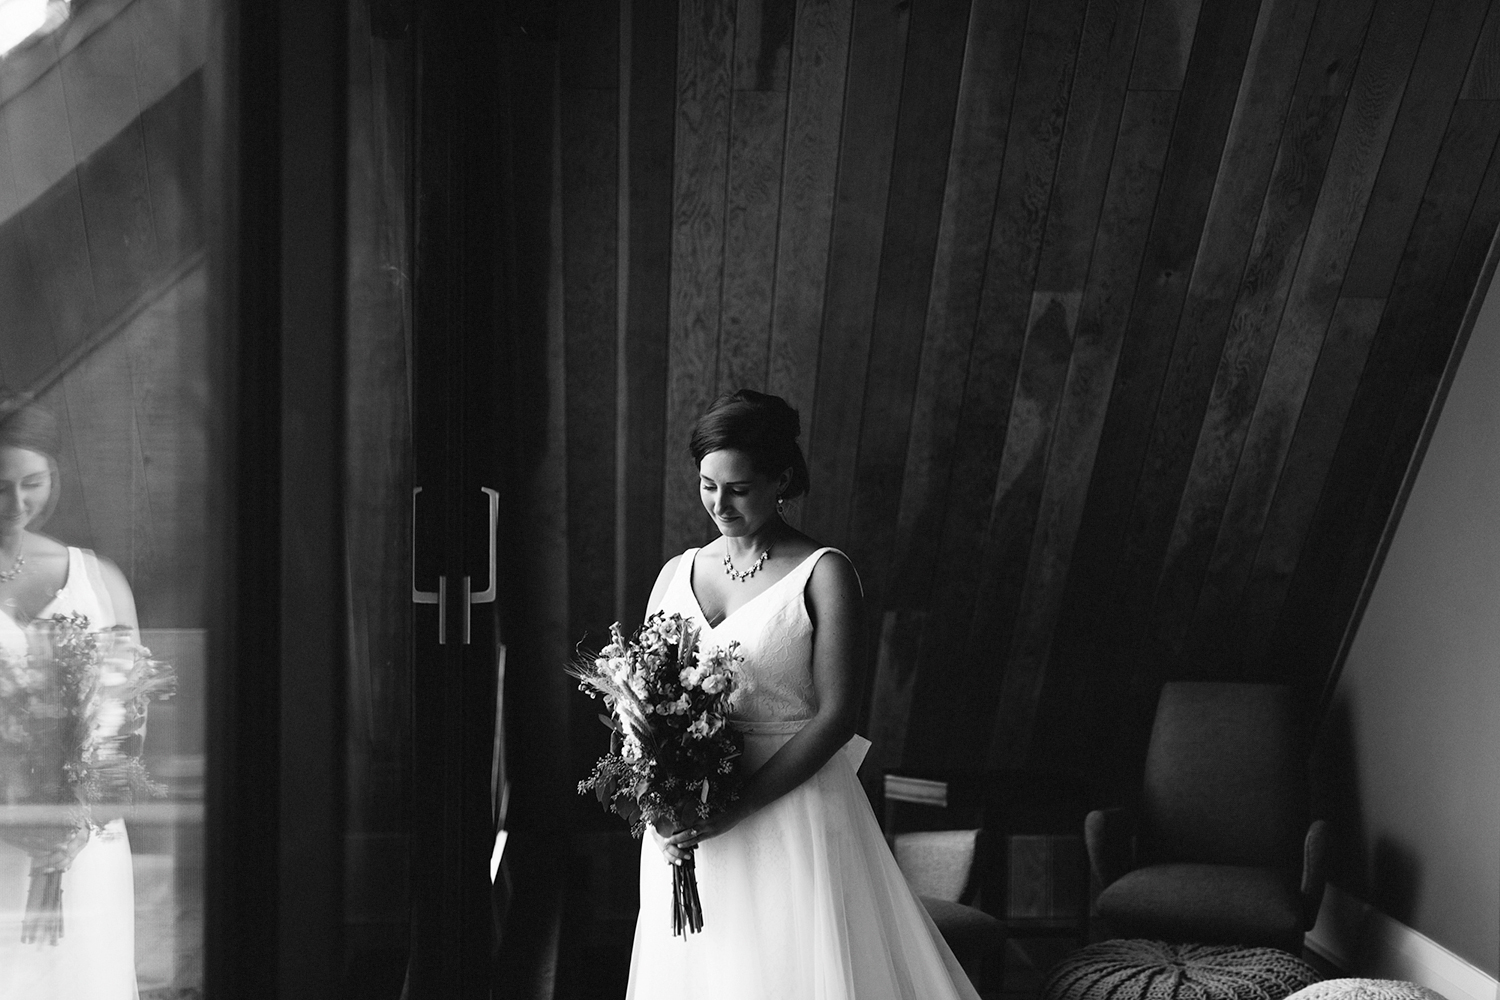 Prince-Edward-County-Drake-Hotel-Elopement-Ryanne-Hollies-Photography-Documentary-Details-of-Brides-wedding-dress-vintage-lace-boutique-junebug-weddings-best-of-the-best-wedding-inspiration-ideas-bridal-portrait.jpg